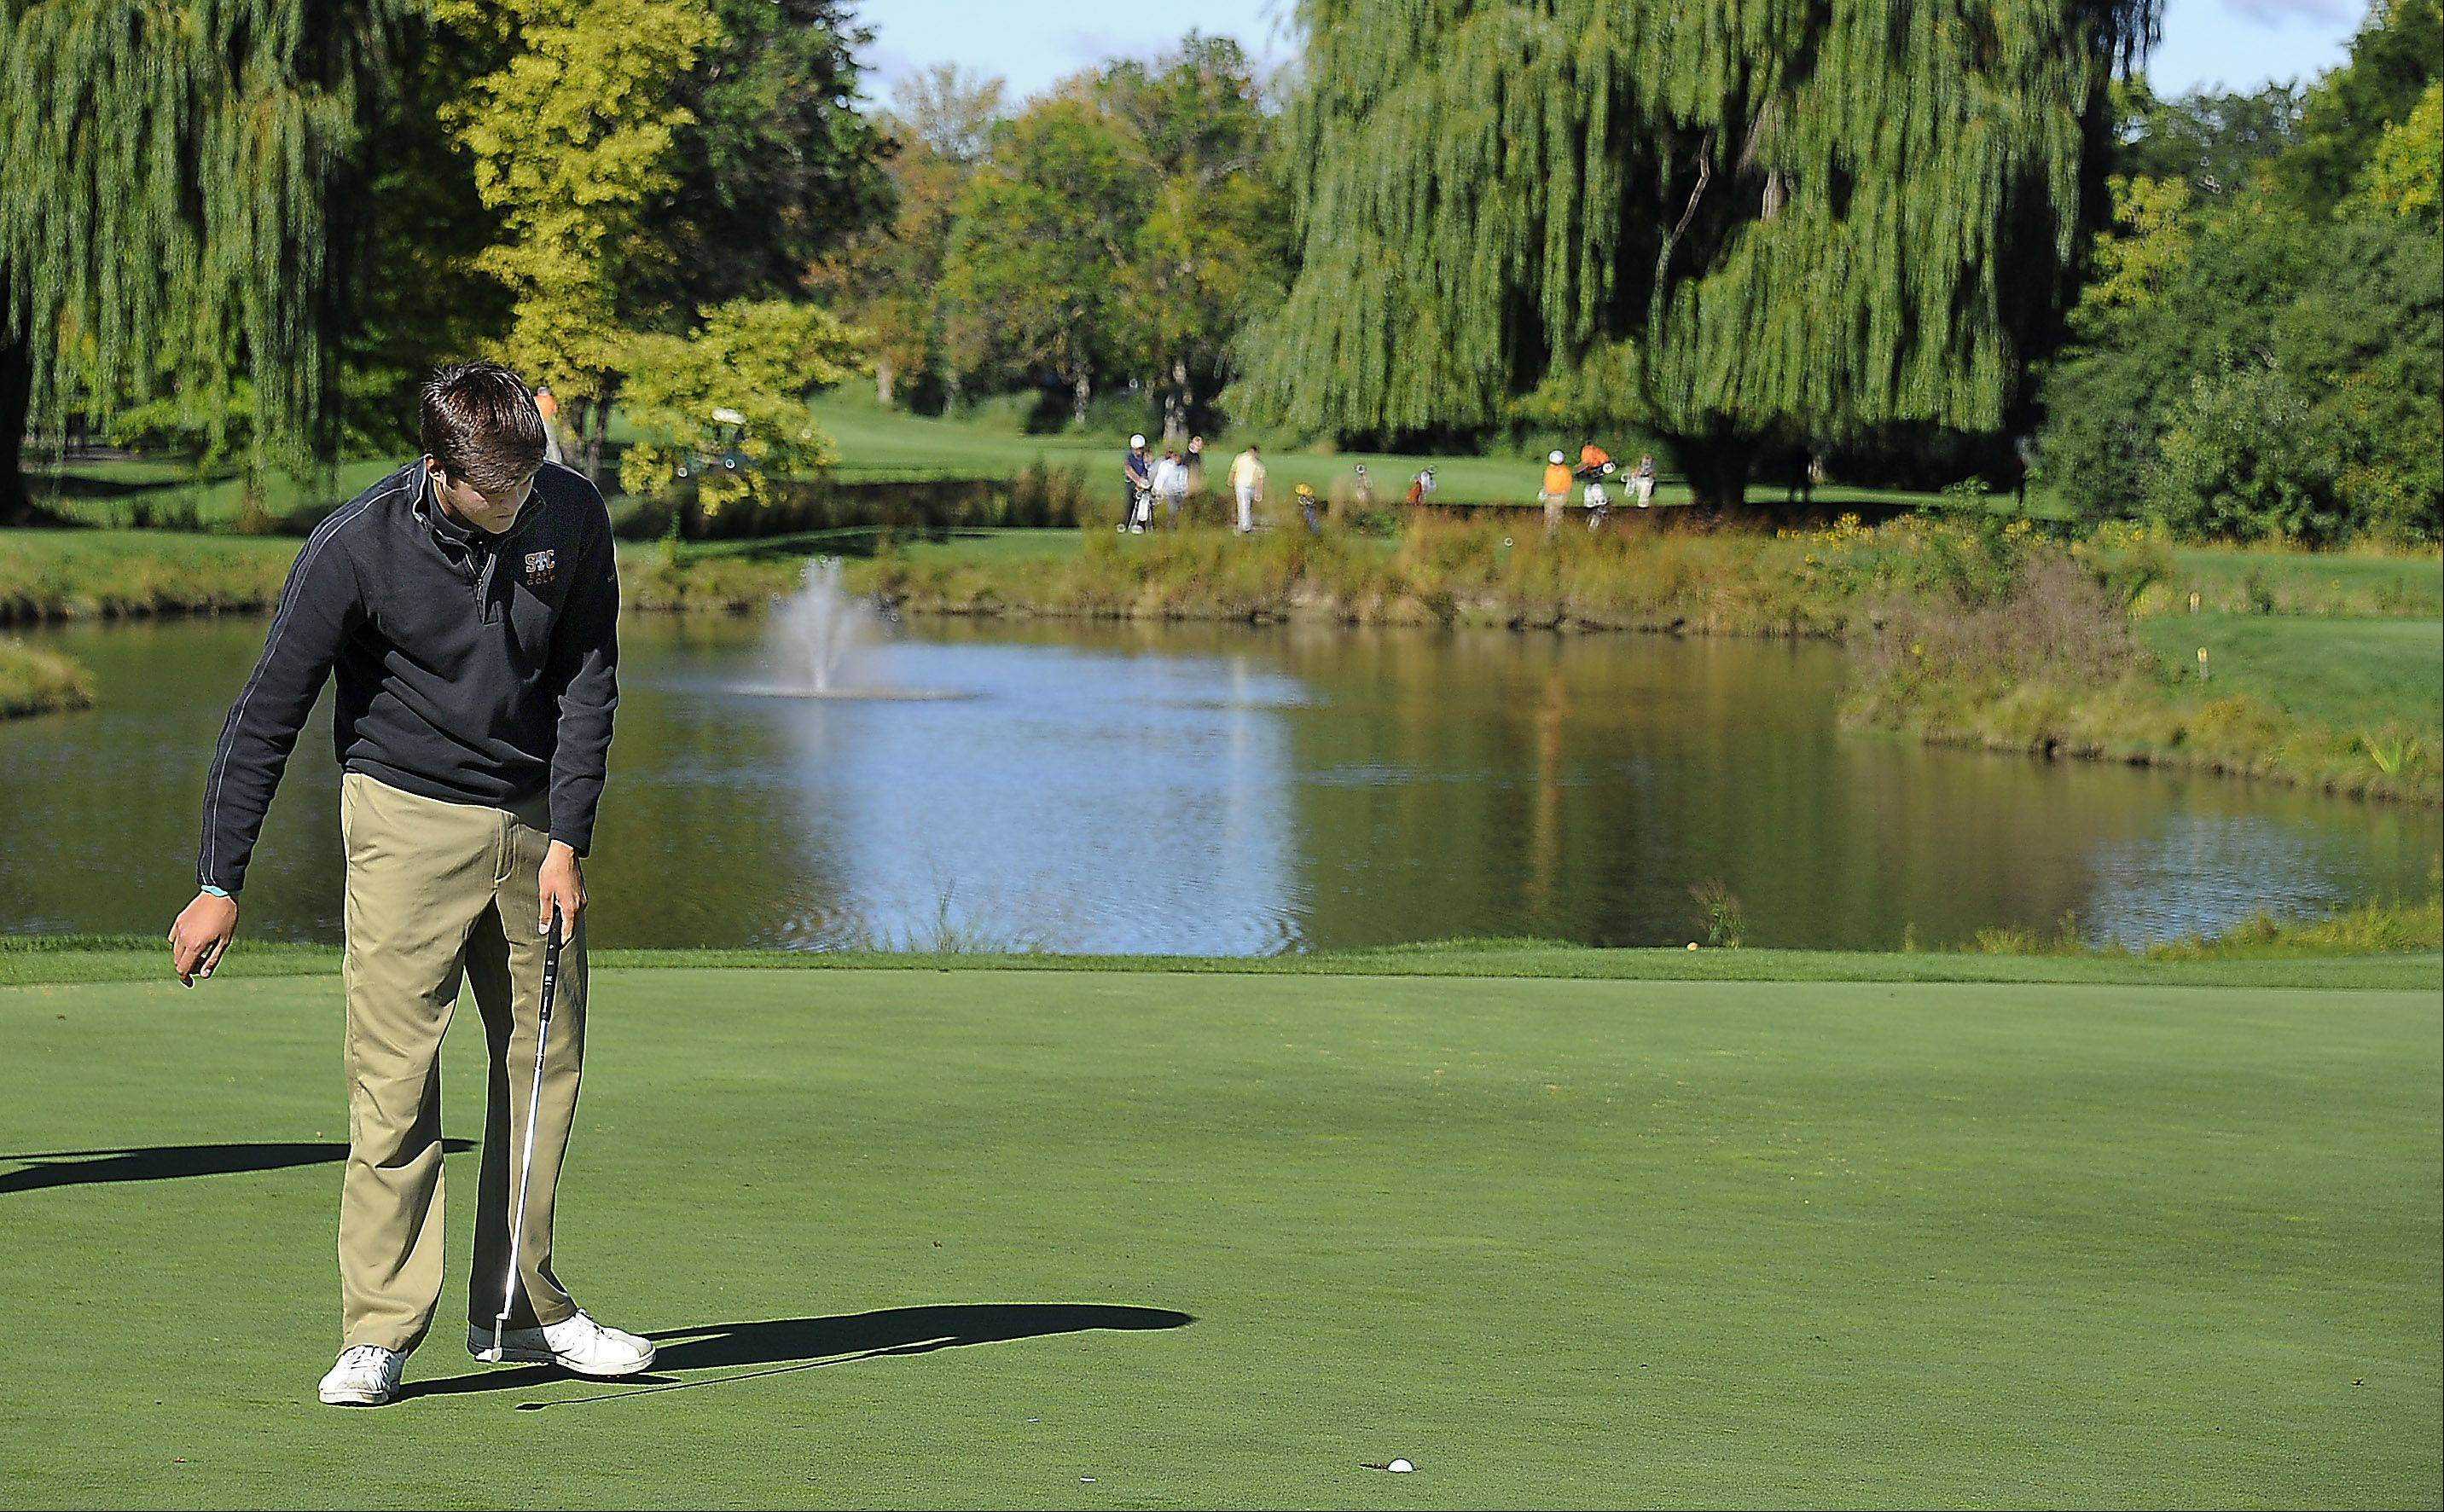 St. Charles East's Kyle Jacobs follows his successful putt at No. 9 at Wheeling's Invitational held at Chevy Chase Golf Club in Wheeling on Saturday.